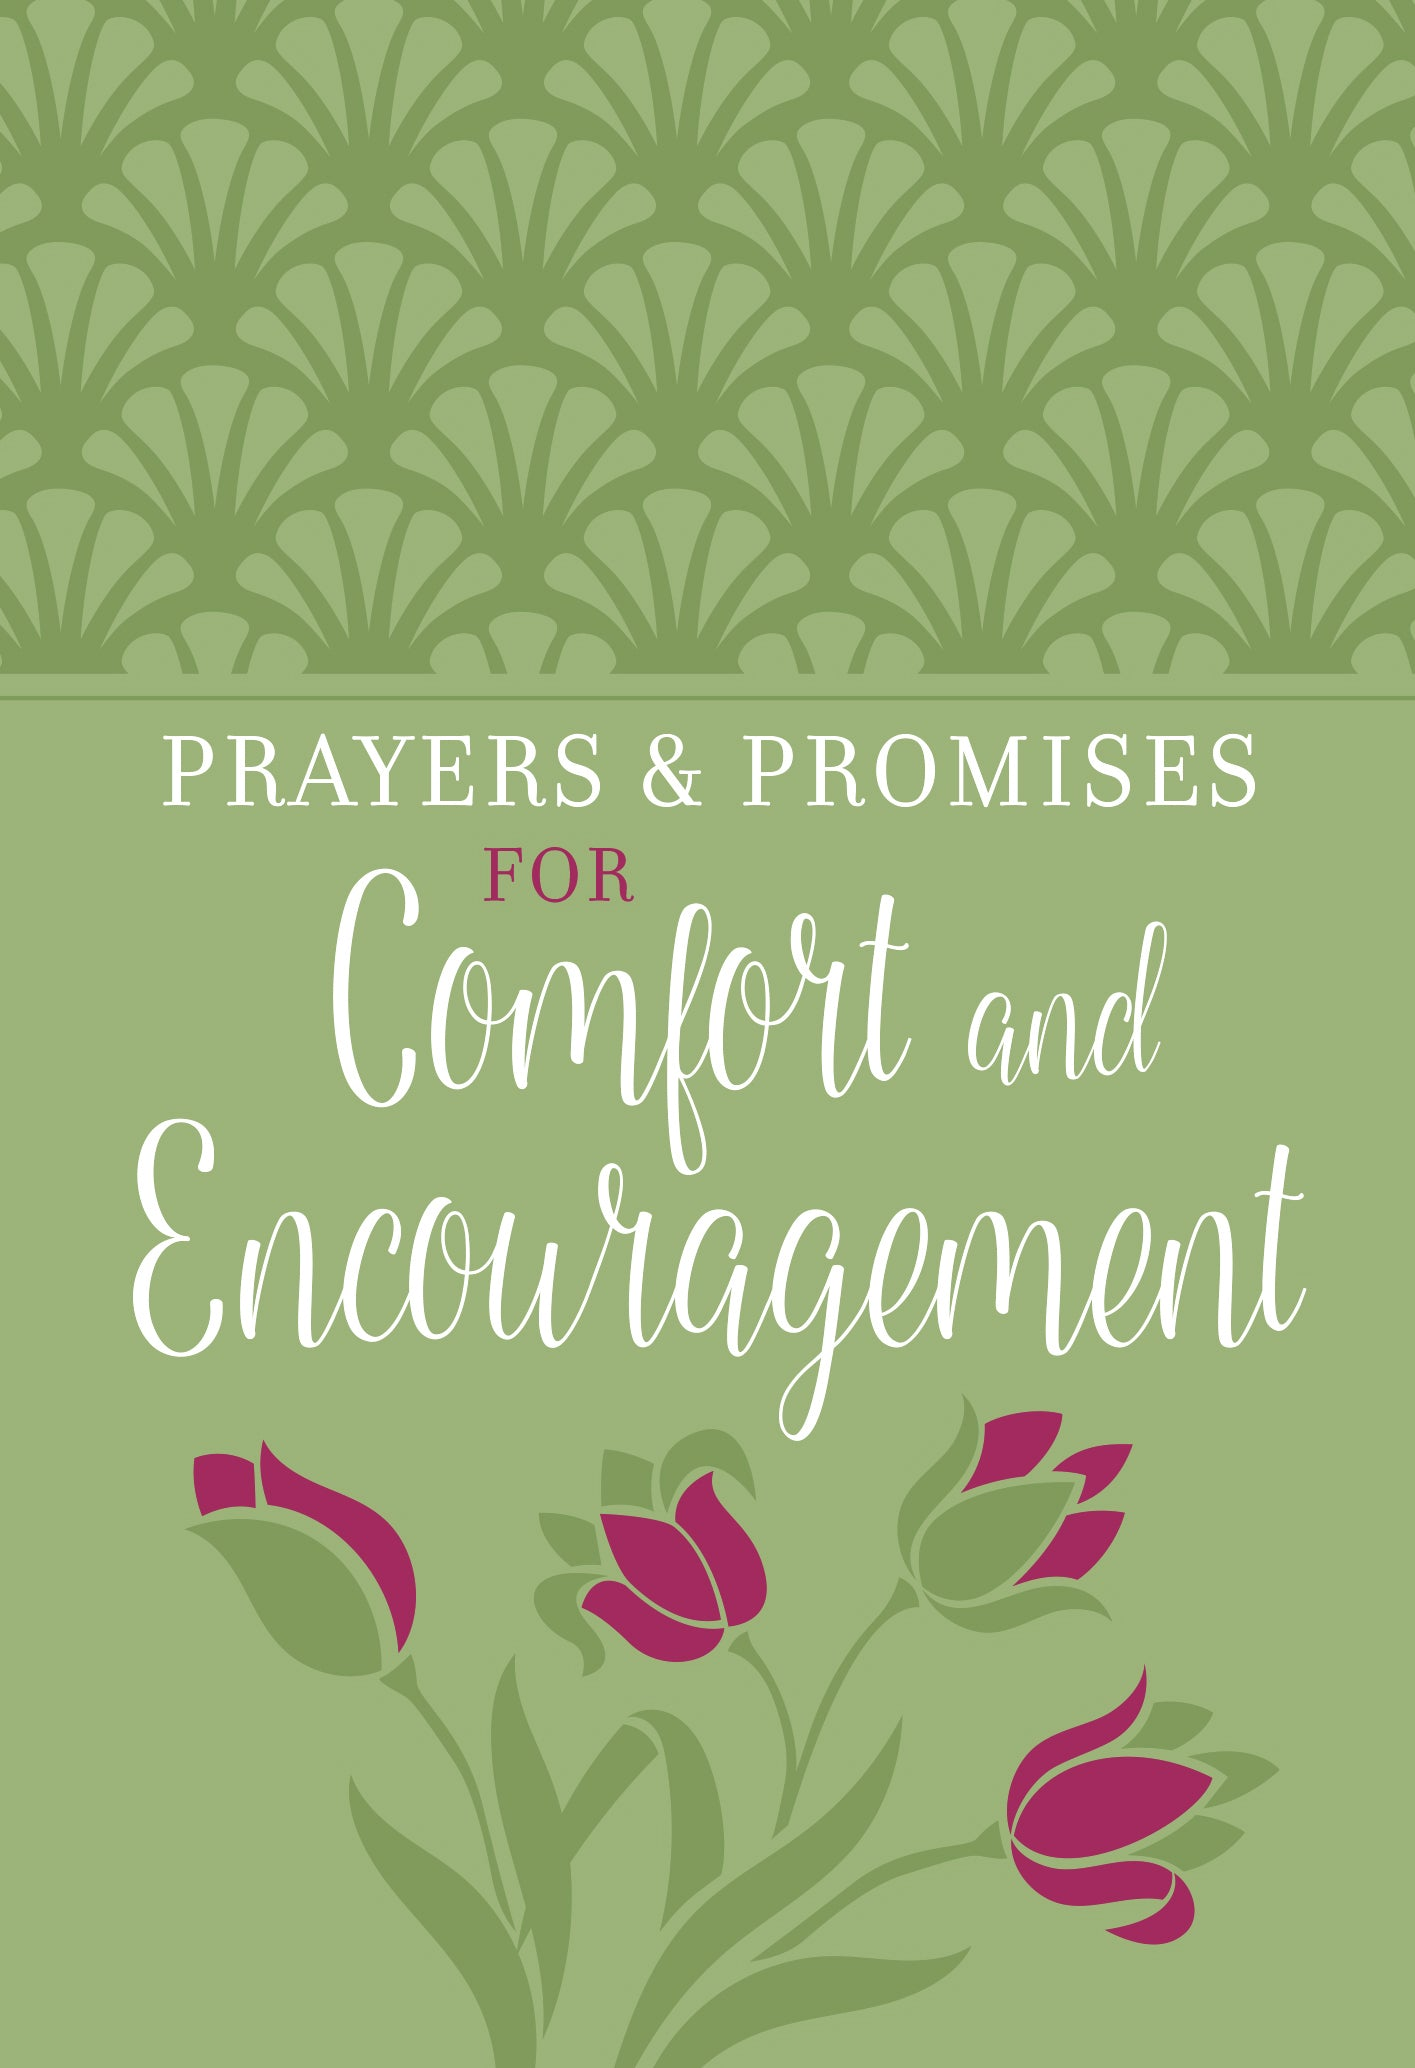 Prayers & Promises Of Comfort & Encouragement